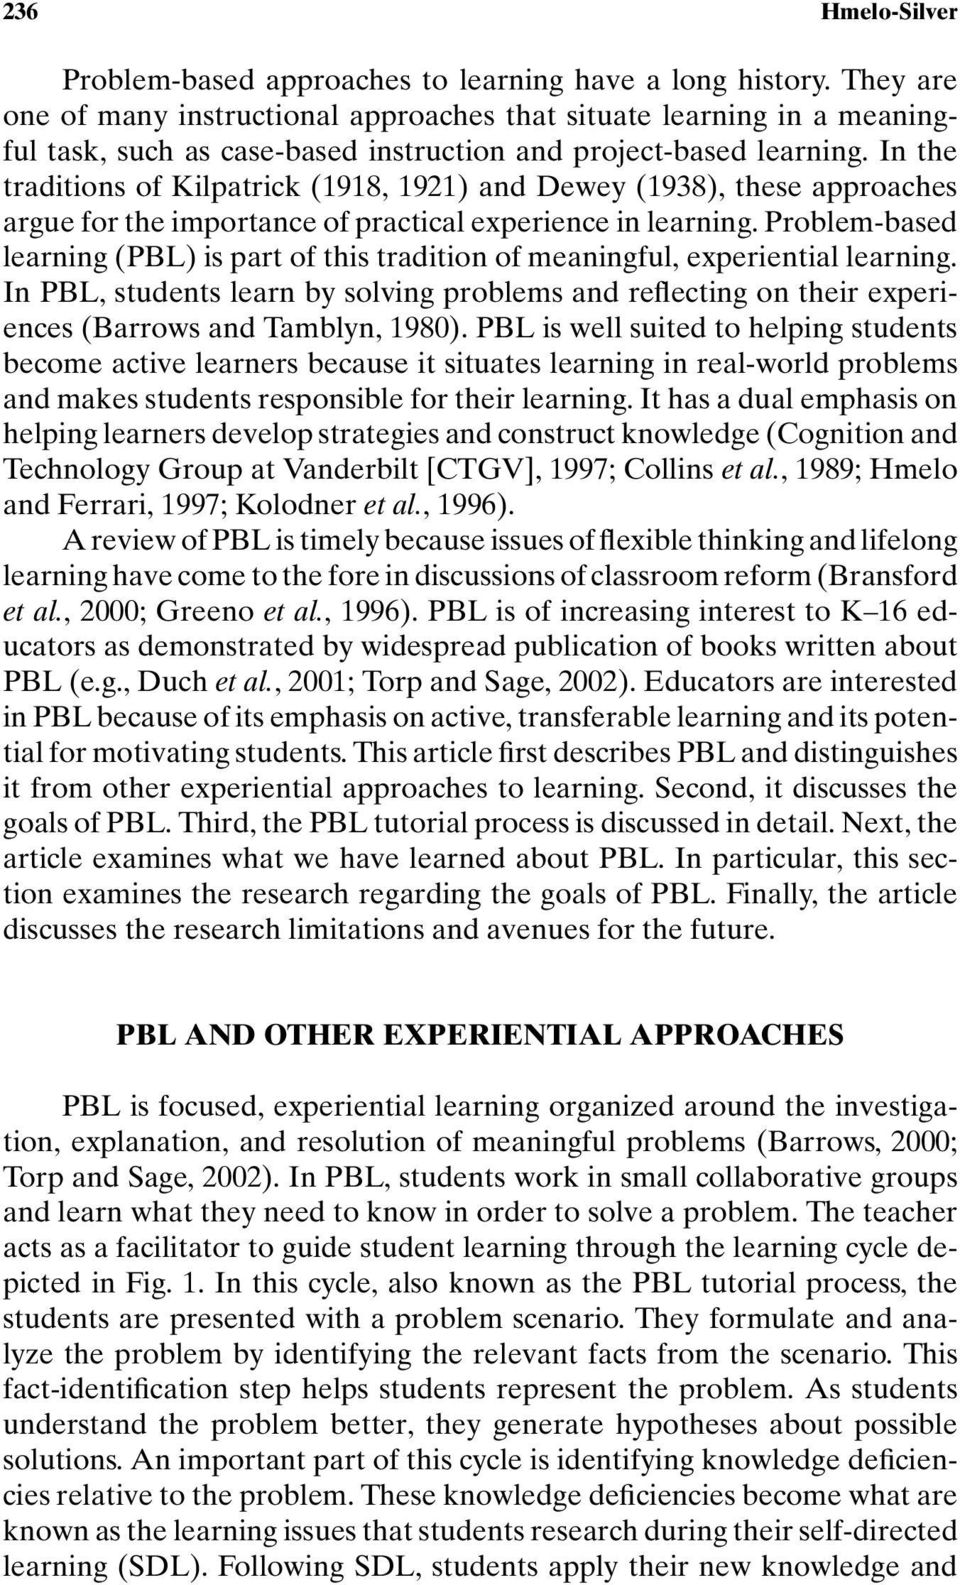 In the traditions of Kilpatrick (1918, 1921) and Dewey (1938), these approaches argue for the importance of practical experience in learning.